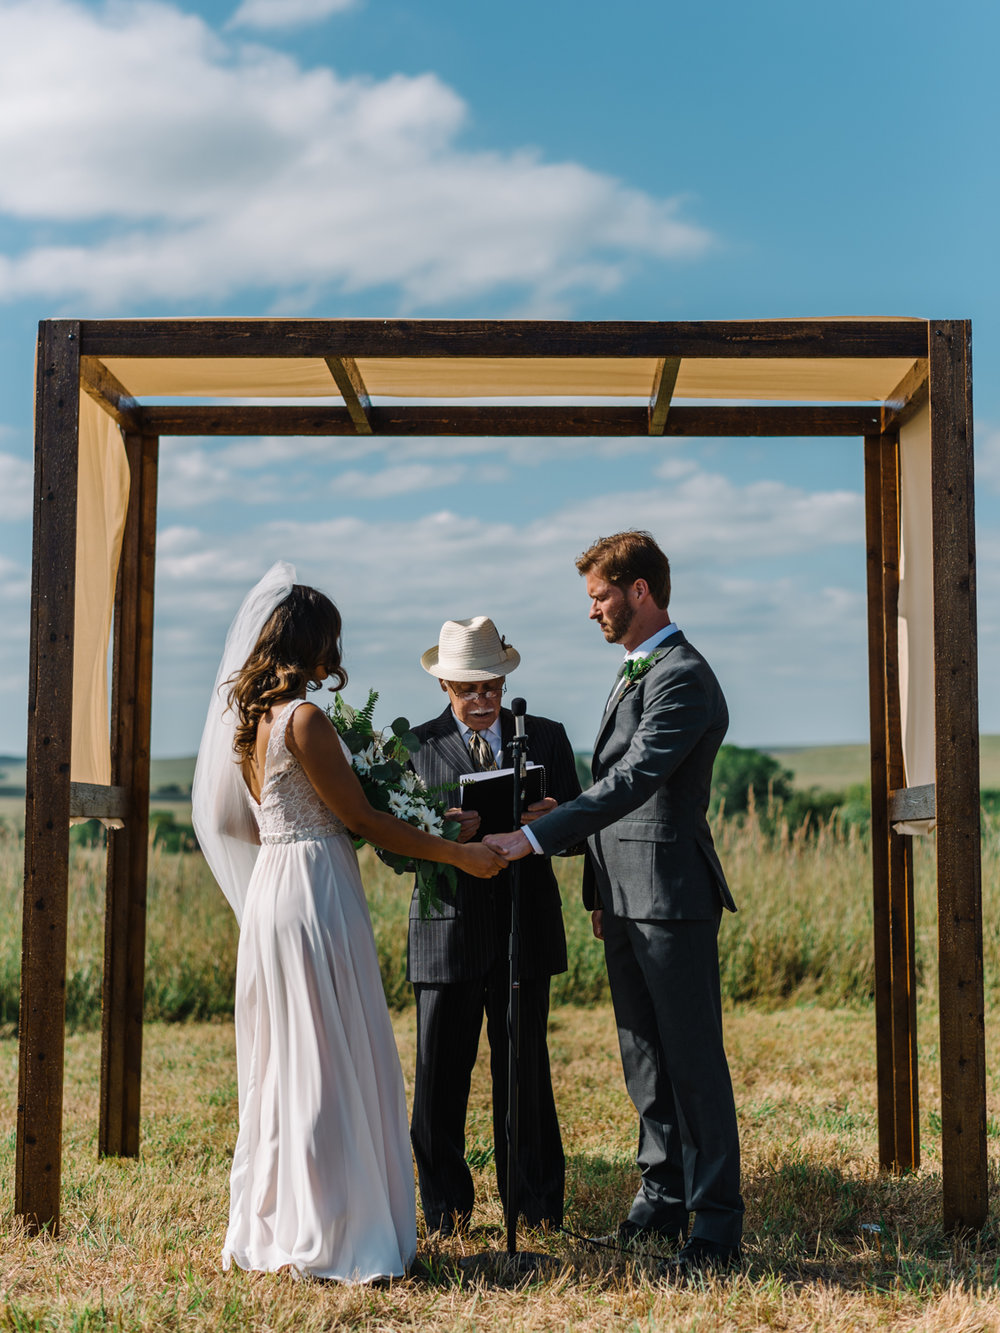 Flint Hills Wedding-Clover Cliff Bed and Breakfast-Neal Dieker-Wichita, Kansas Wedding Photographer-Kansas Outdoor Wedding-179.jpg